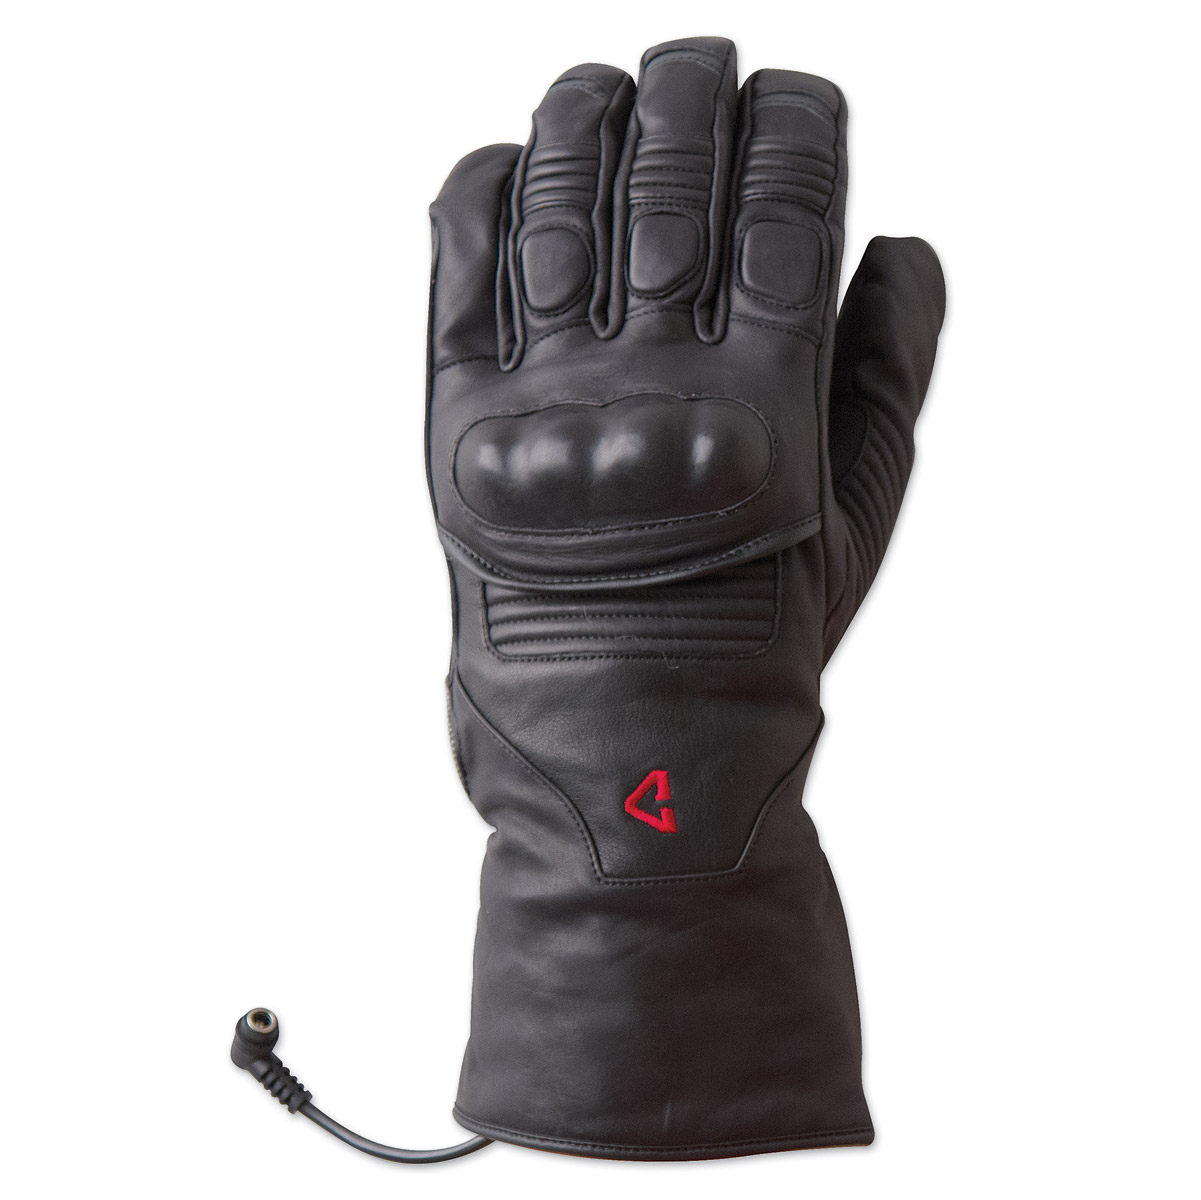 Mens black leather gloves xl - Gyde Powered By Gerbing Men S Vanguard Heated Black Leather Gloves